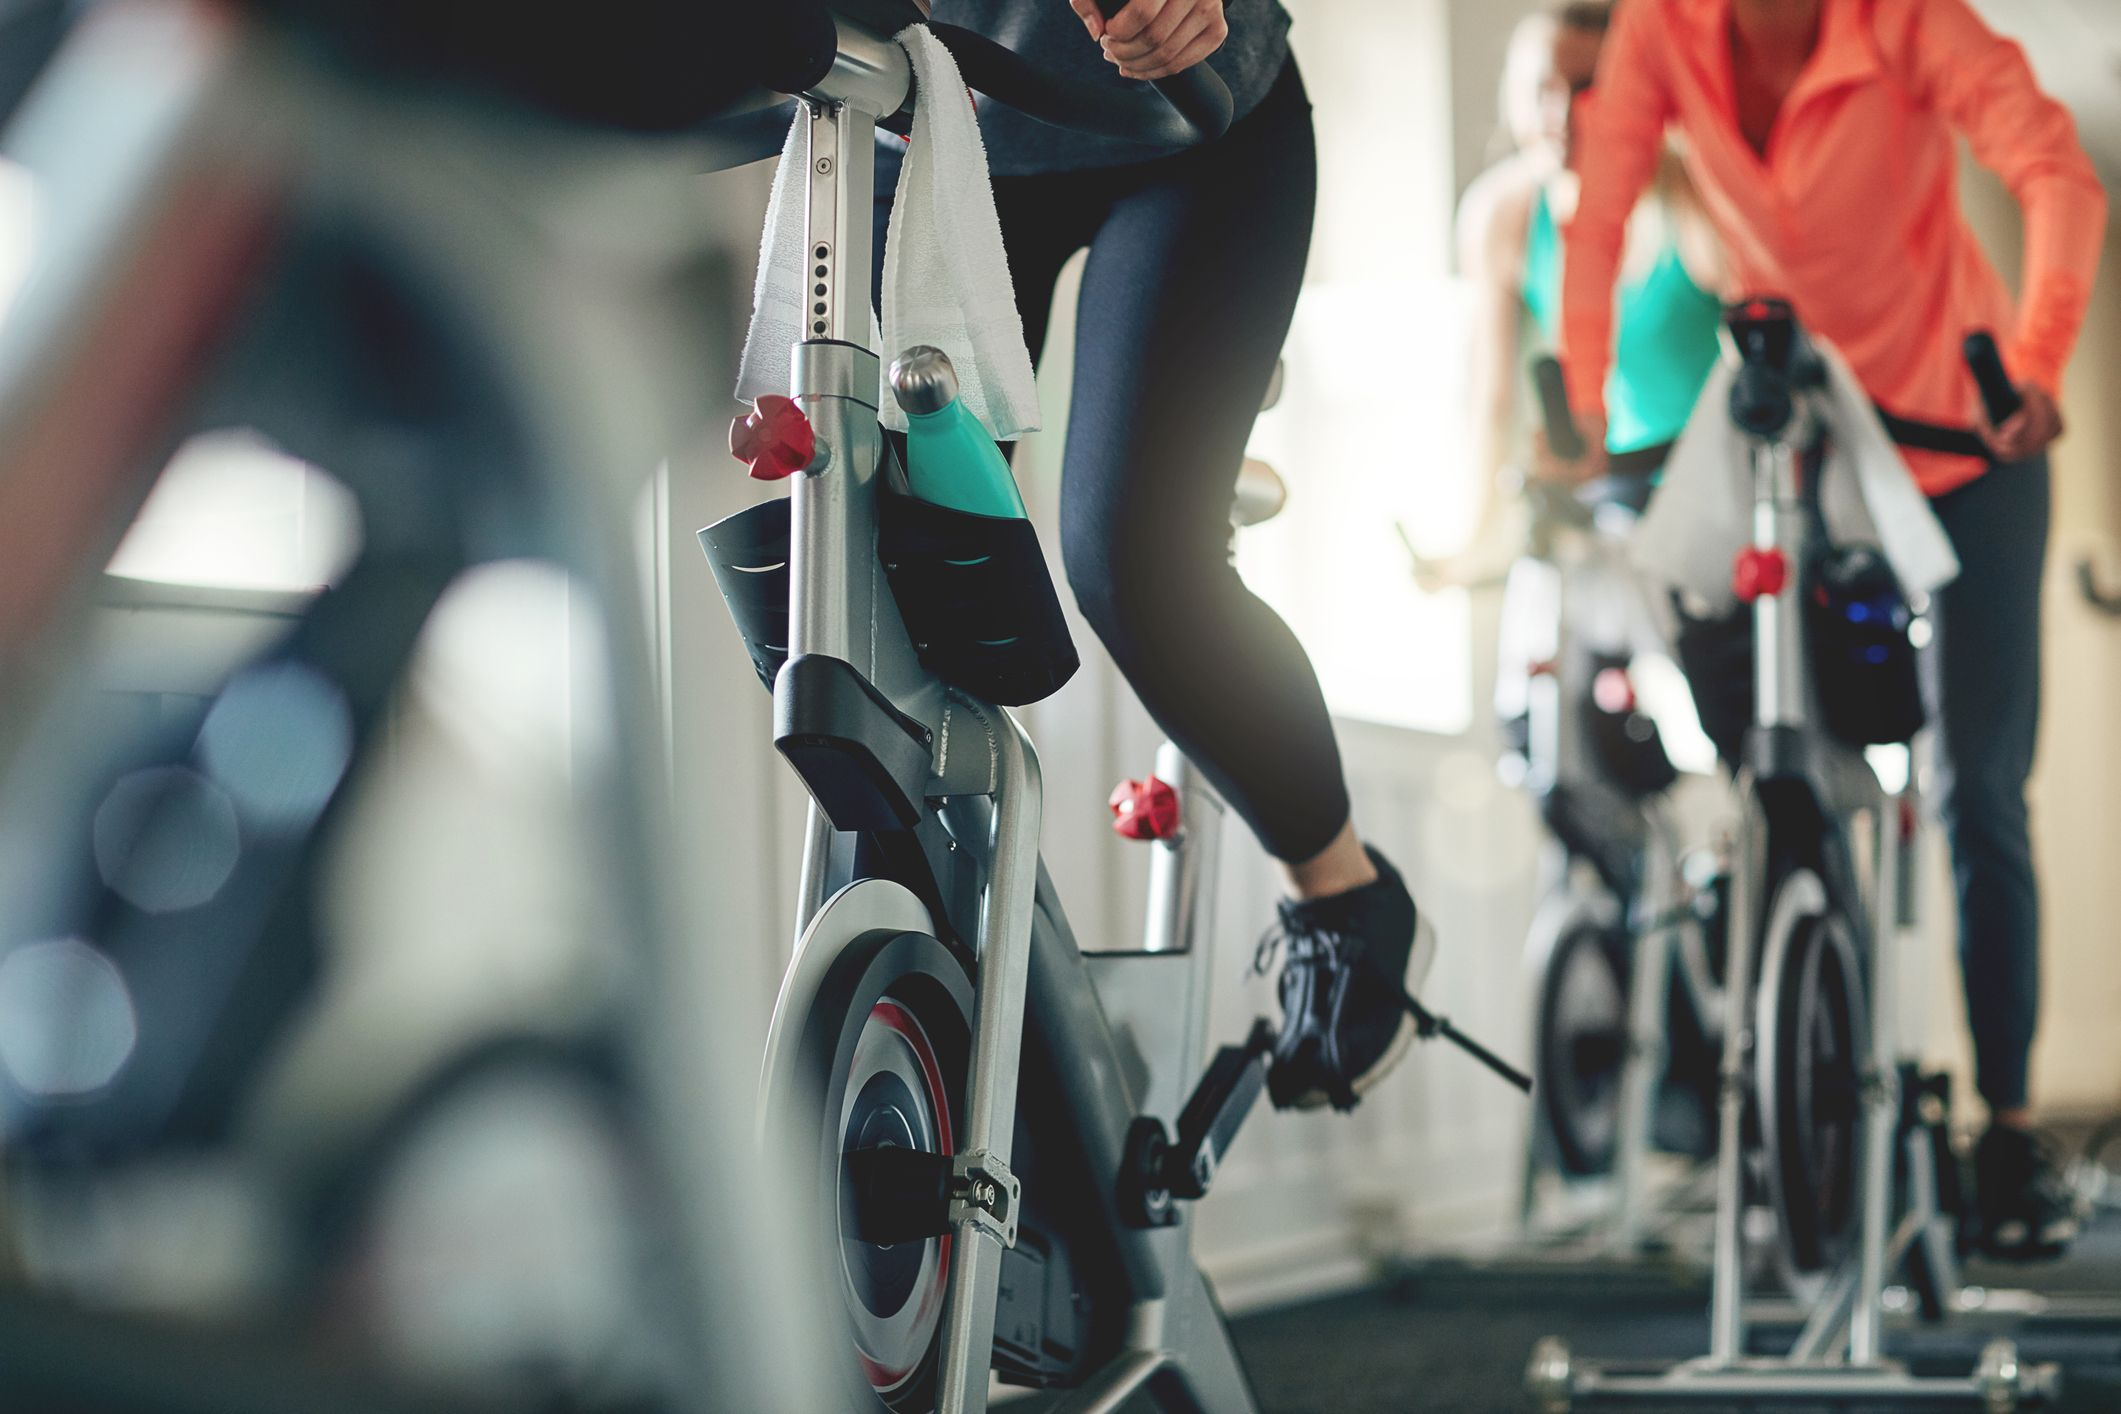 7 Benefits of Spin Class That'll Convince You to Sign Up